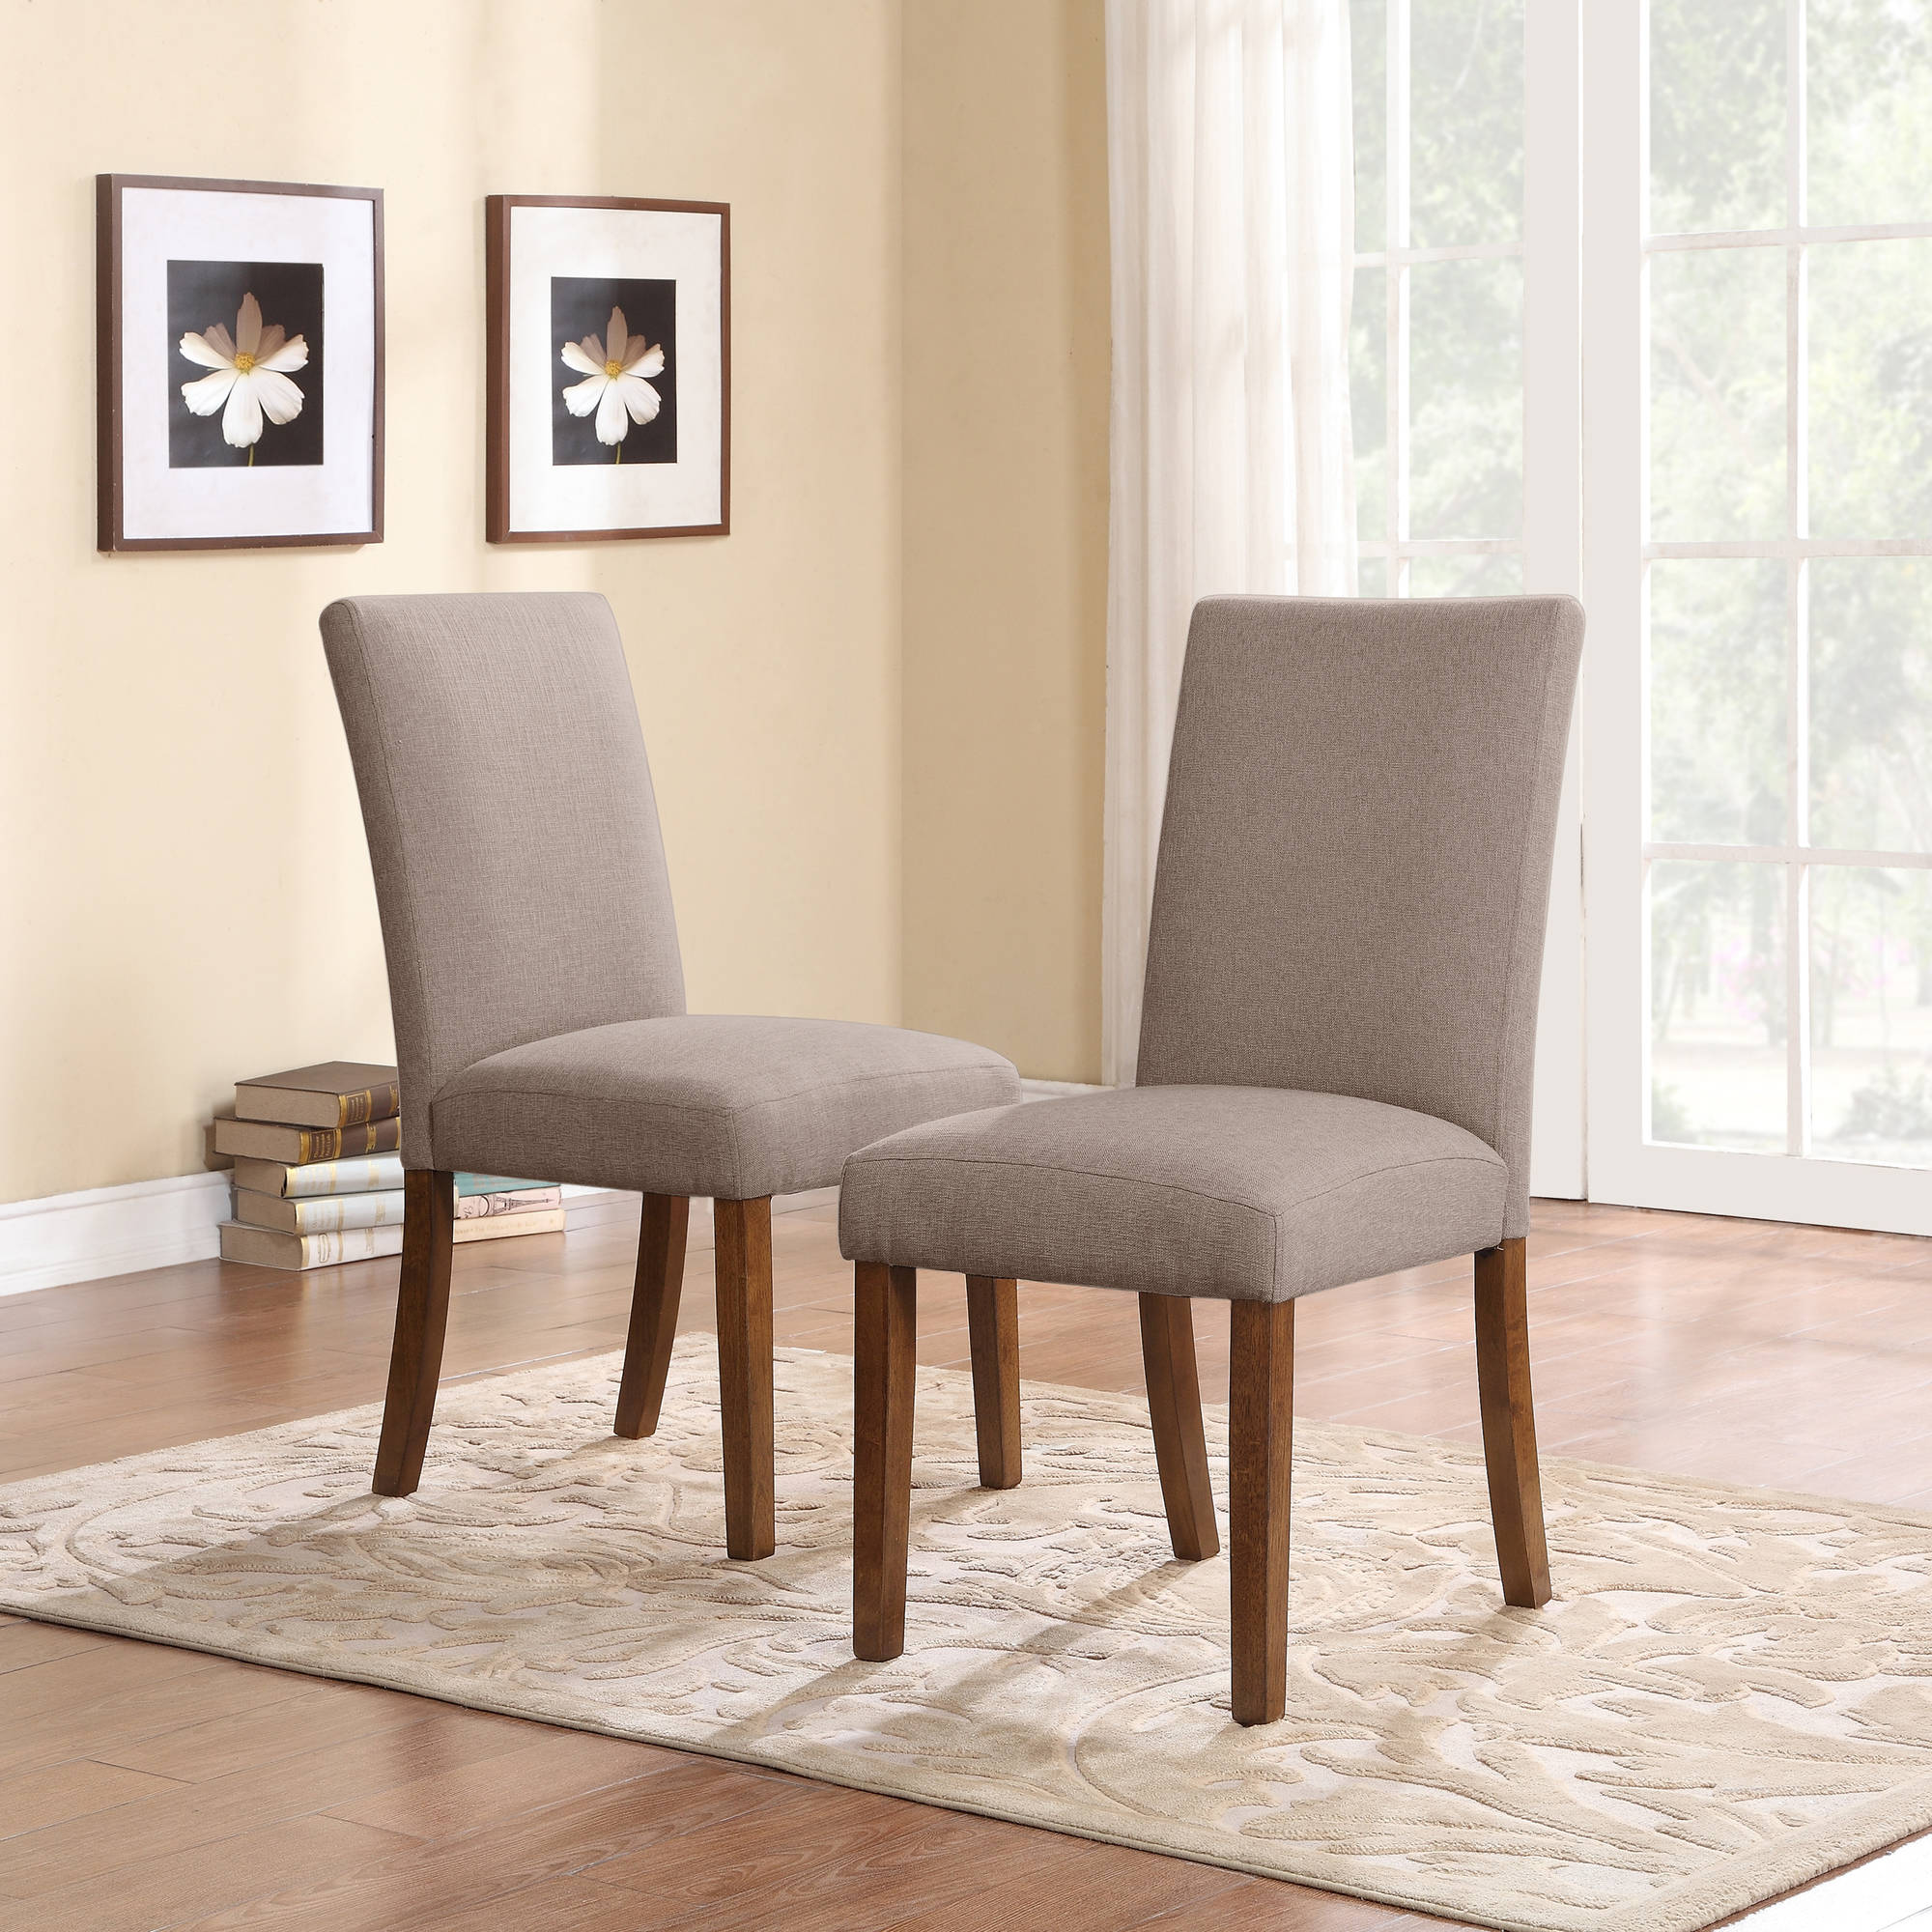 parsons chairs dorel living linen parsons chair, set of 2, dark pine with gray seats JLKEODN